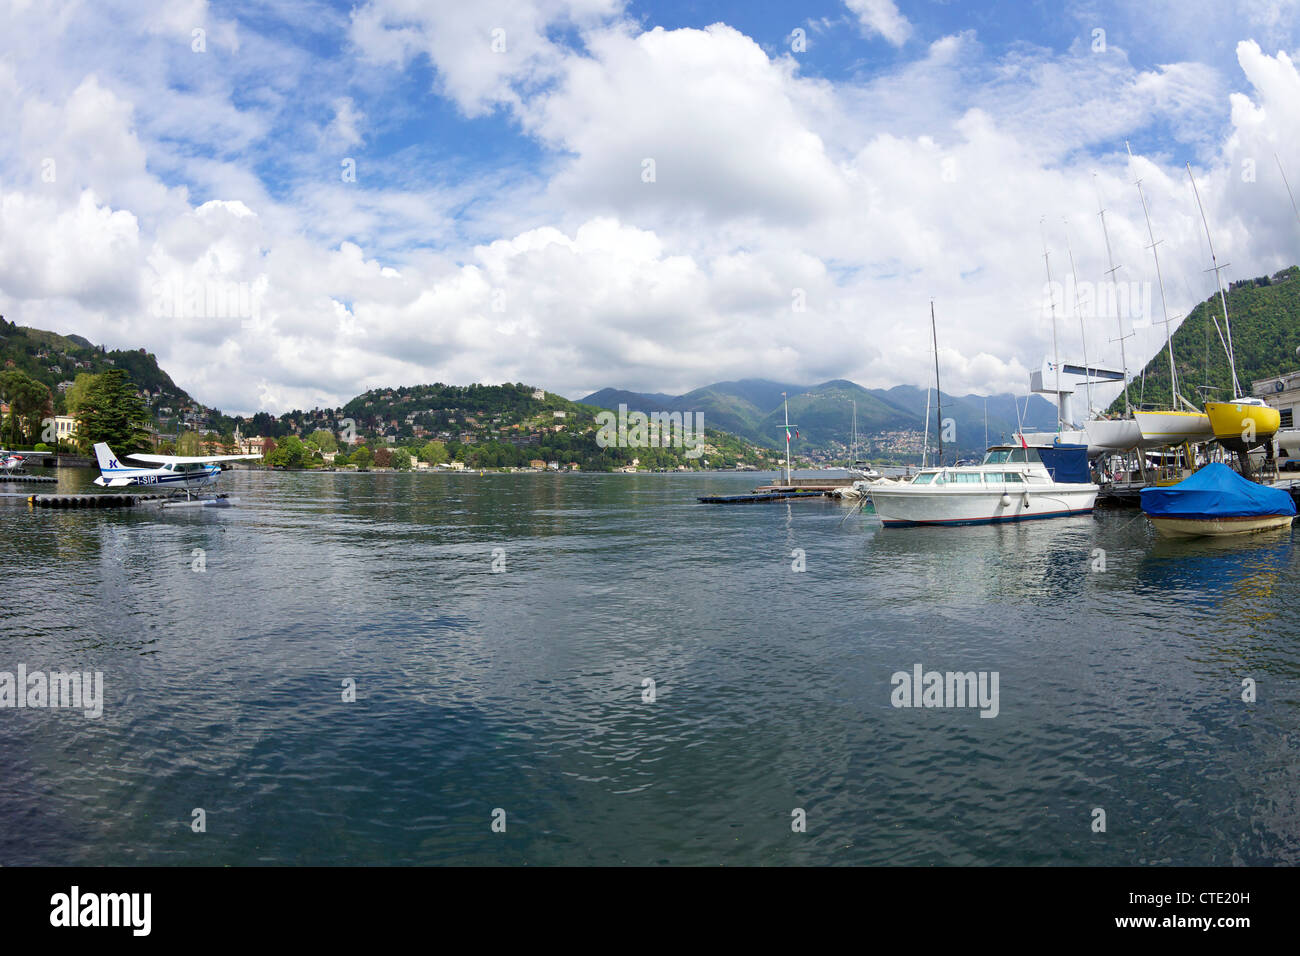 Cessna Seaplane and yachts at the Aero Club on Lake Como, Northern Italy, Europe Stock Photo